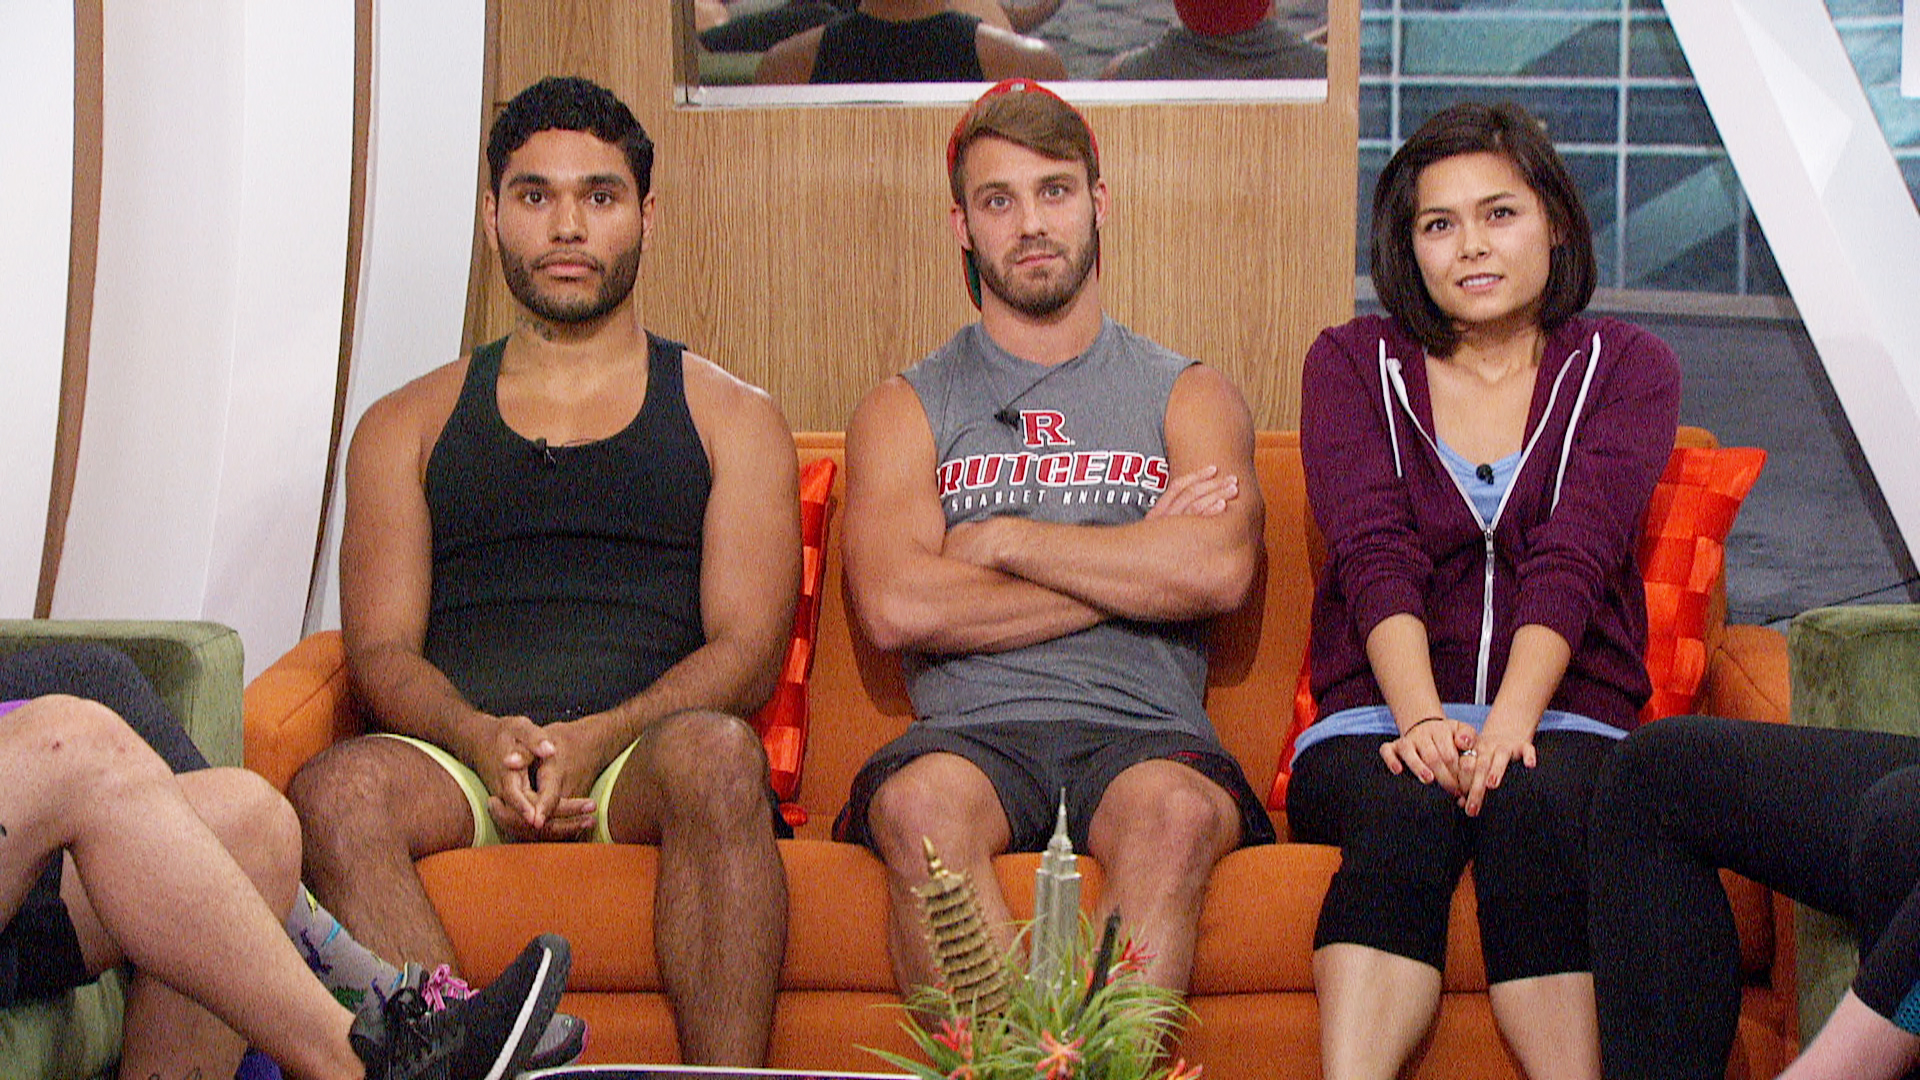 Watch Big Brother Season 18 Episode 5: Episode 5 - Full show on CBS All  Access